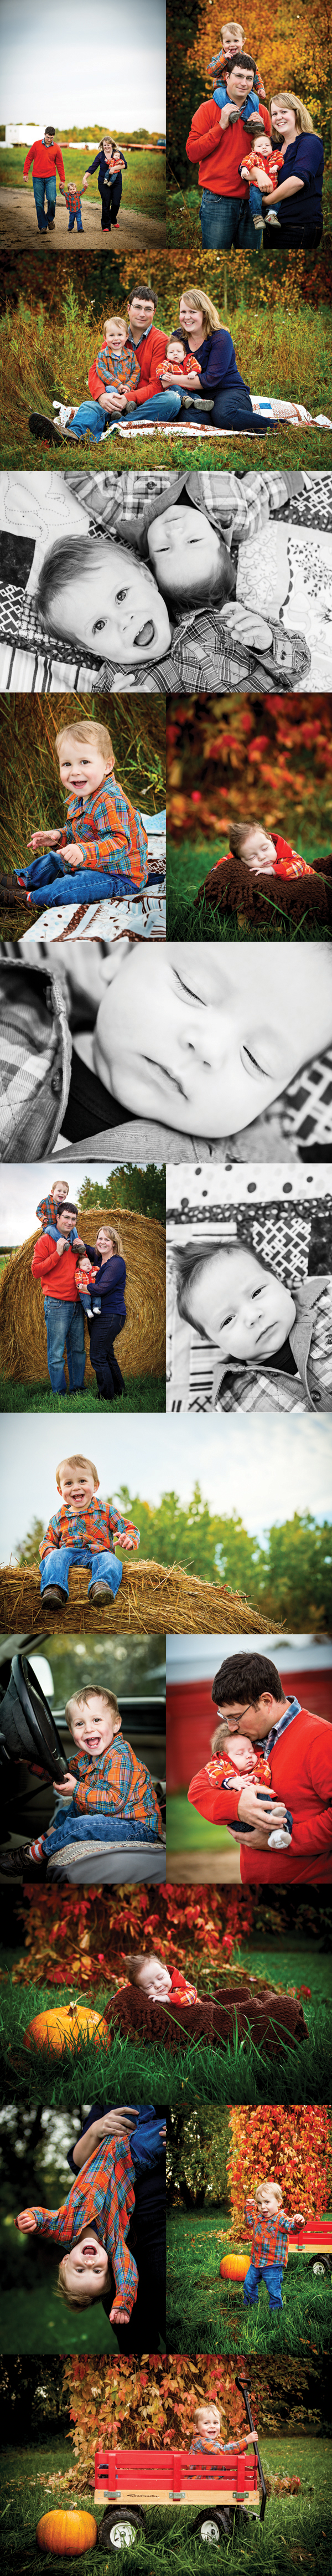 Winnipeg Family Photography